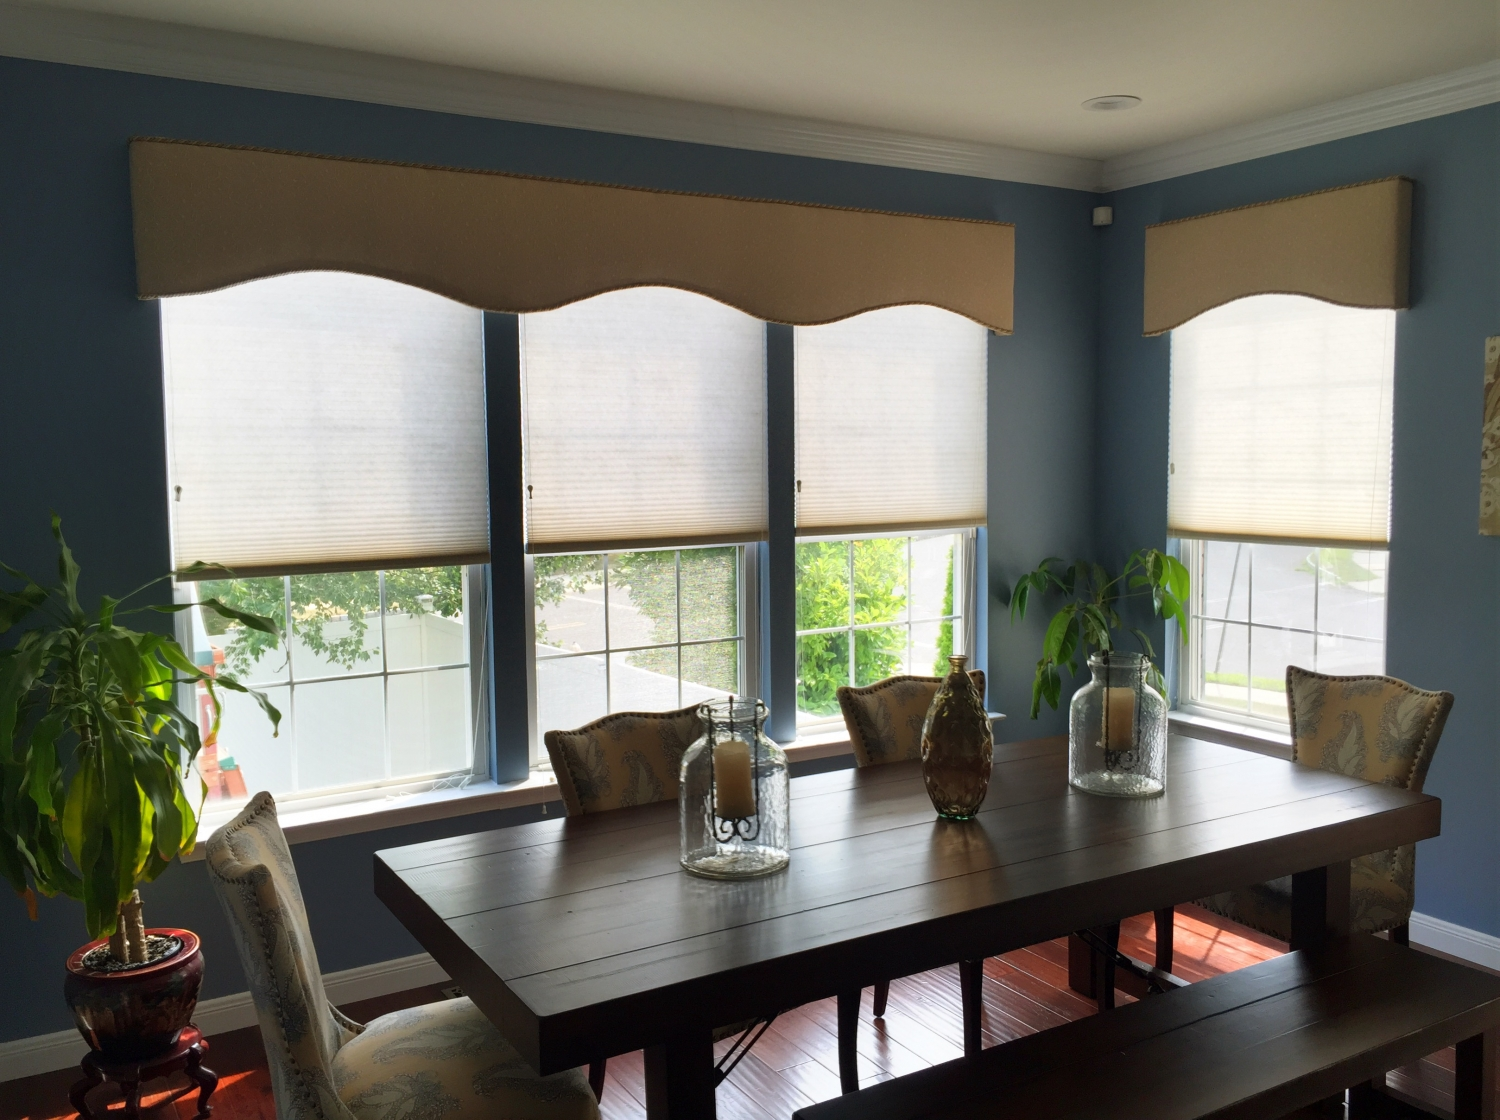 Cornices over Cellular Shades